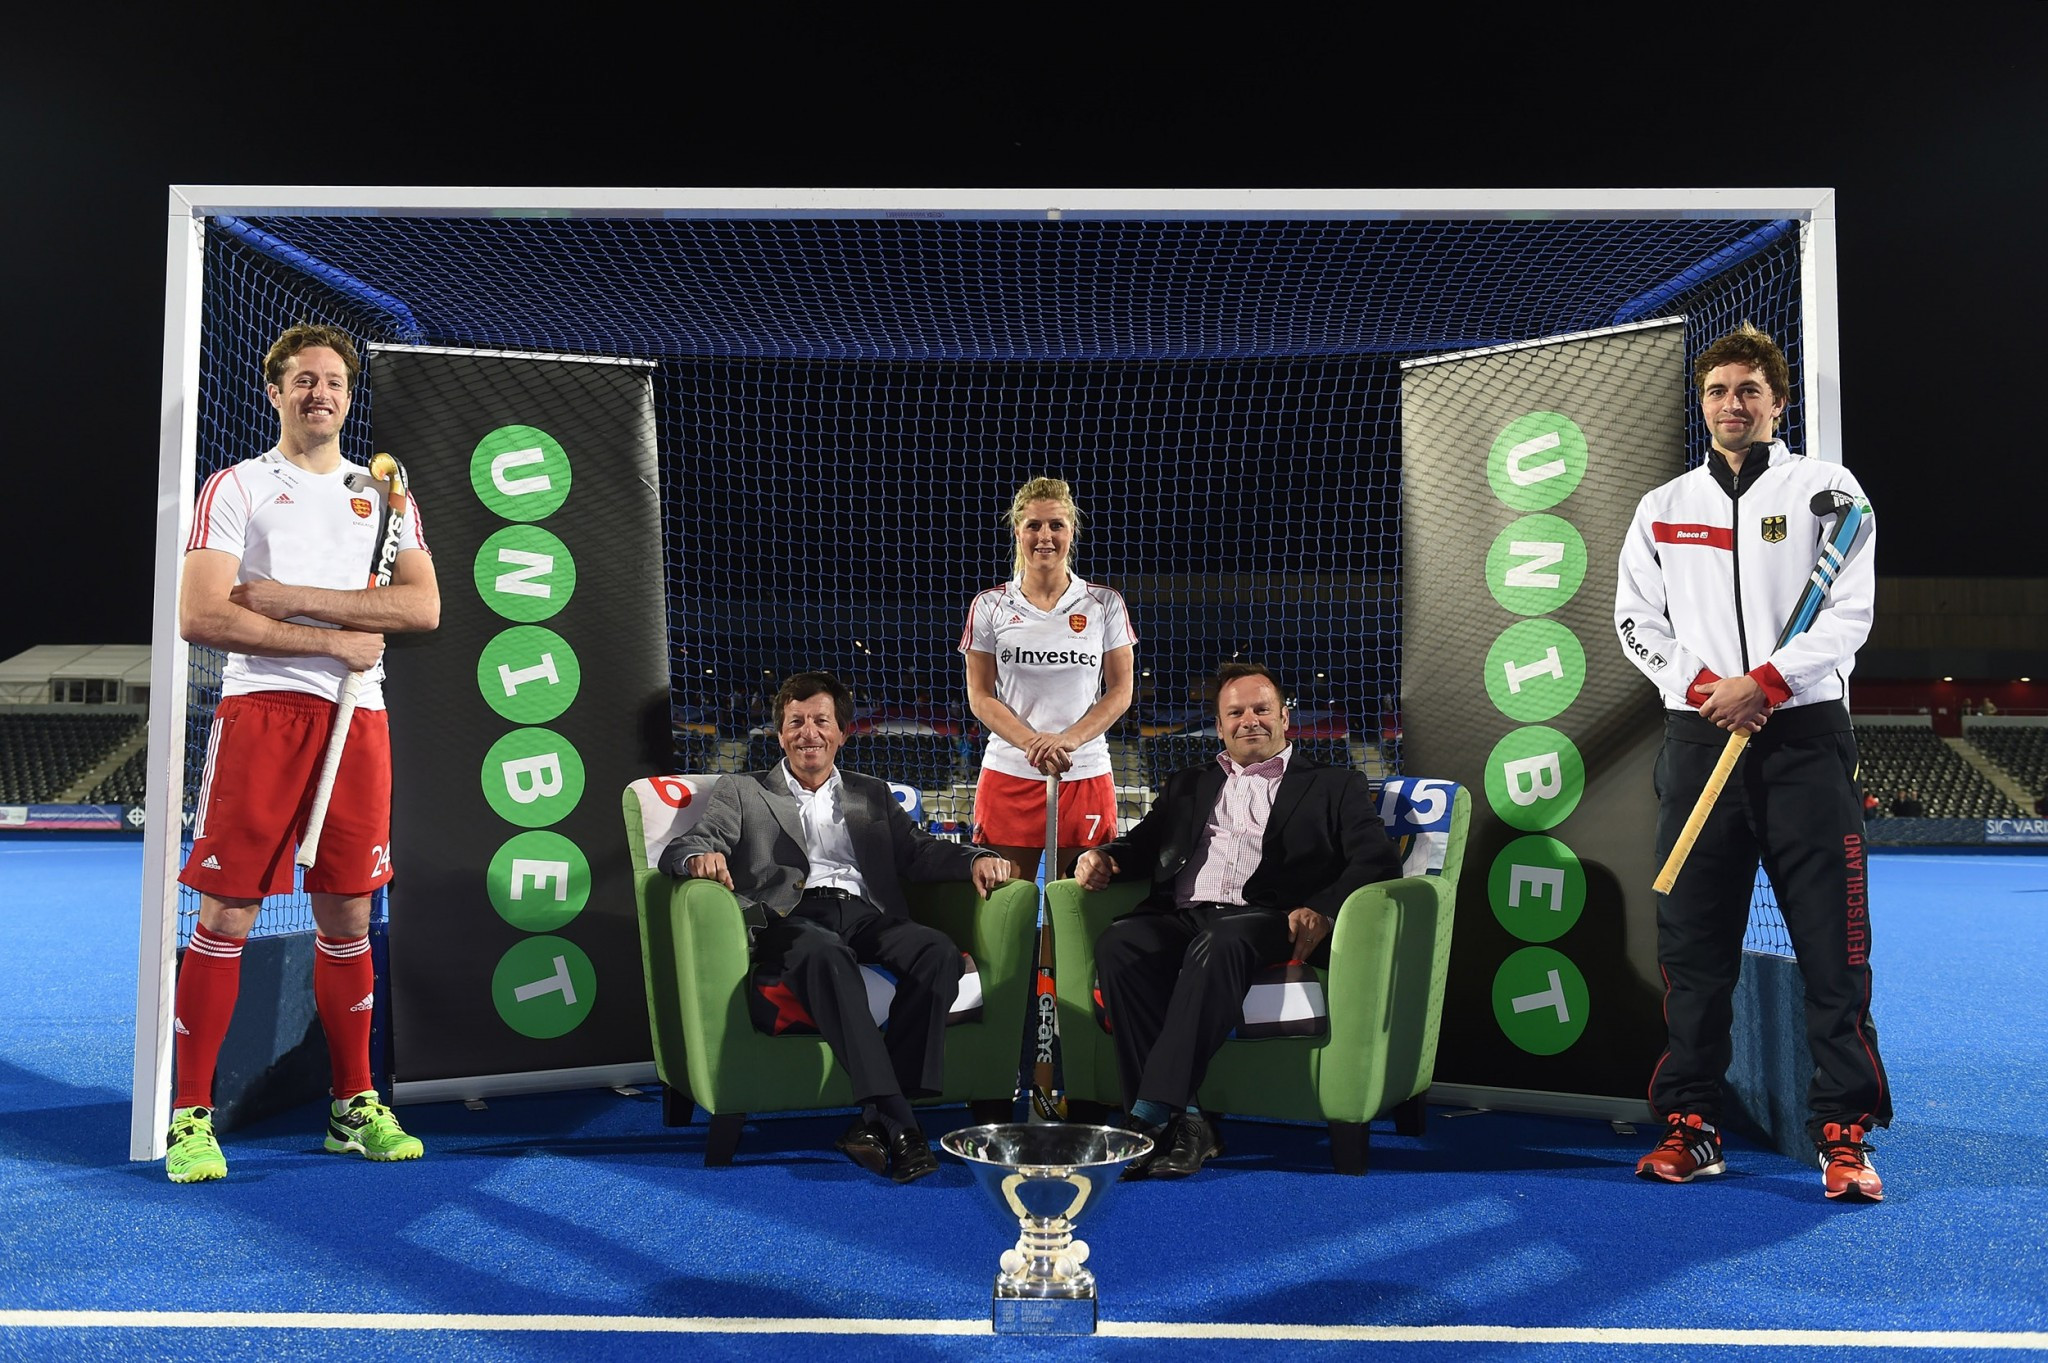 Unibet announced as title sponsor for 2015 EuroHockey Championships